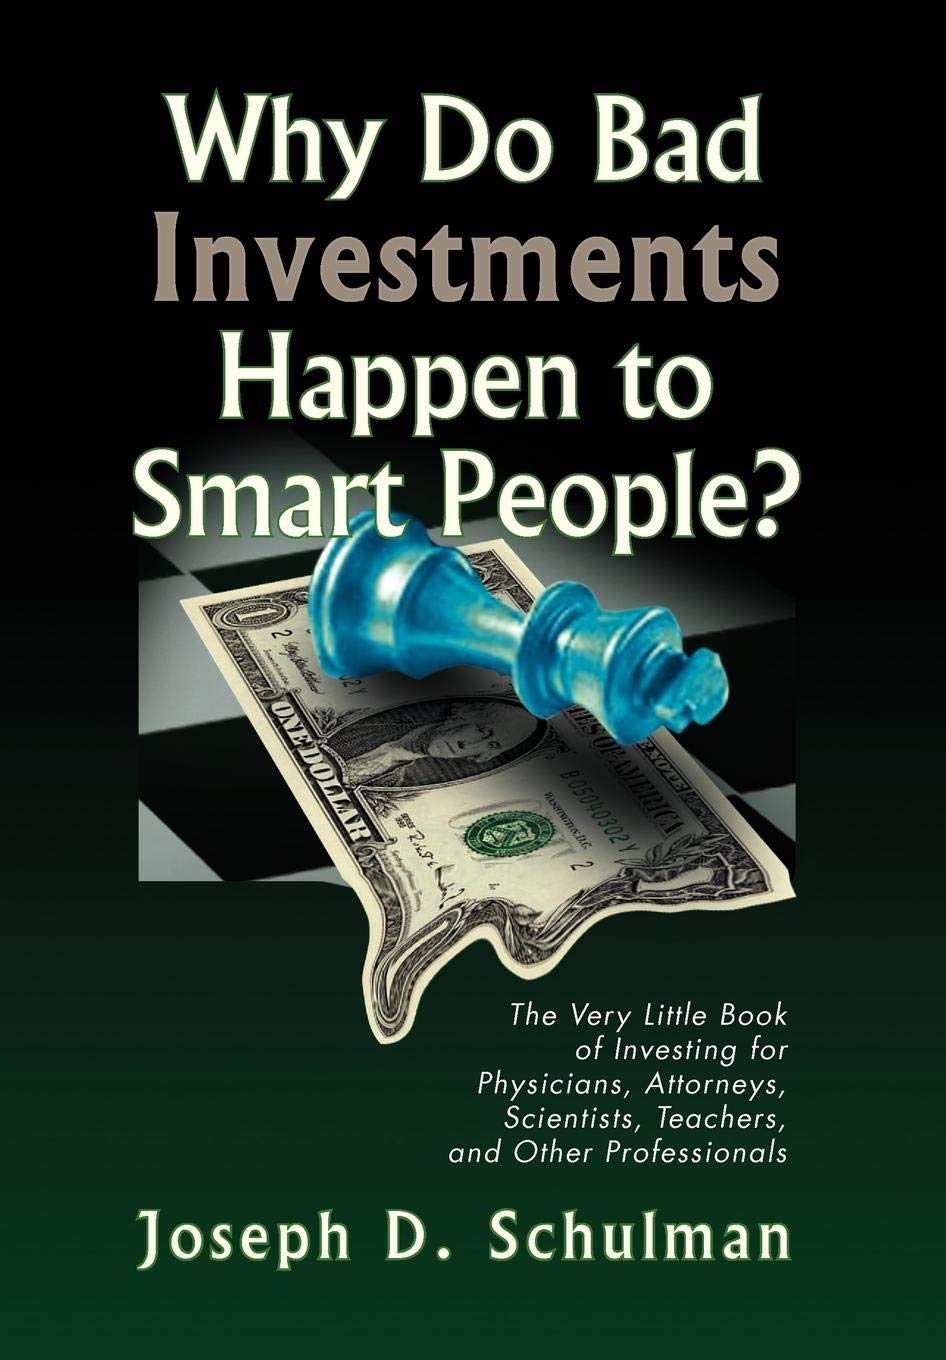 Why Do Bad Investments Happen to Smart People?